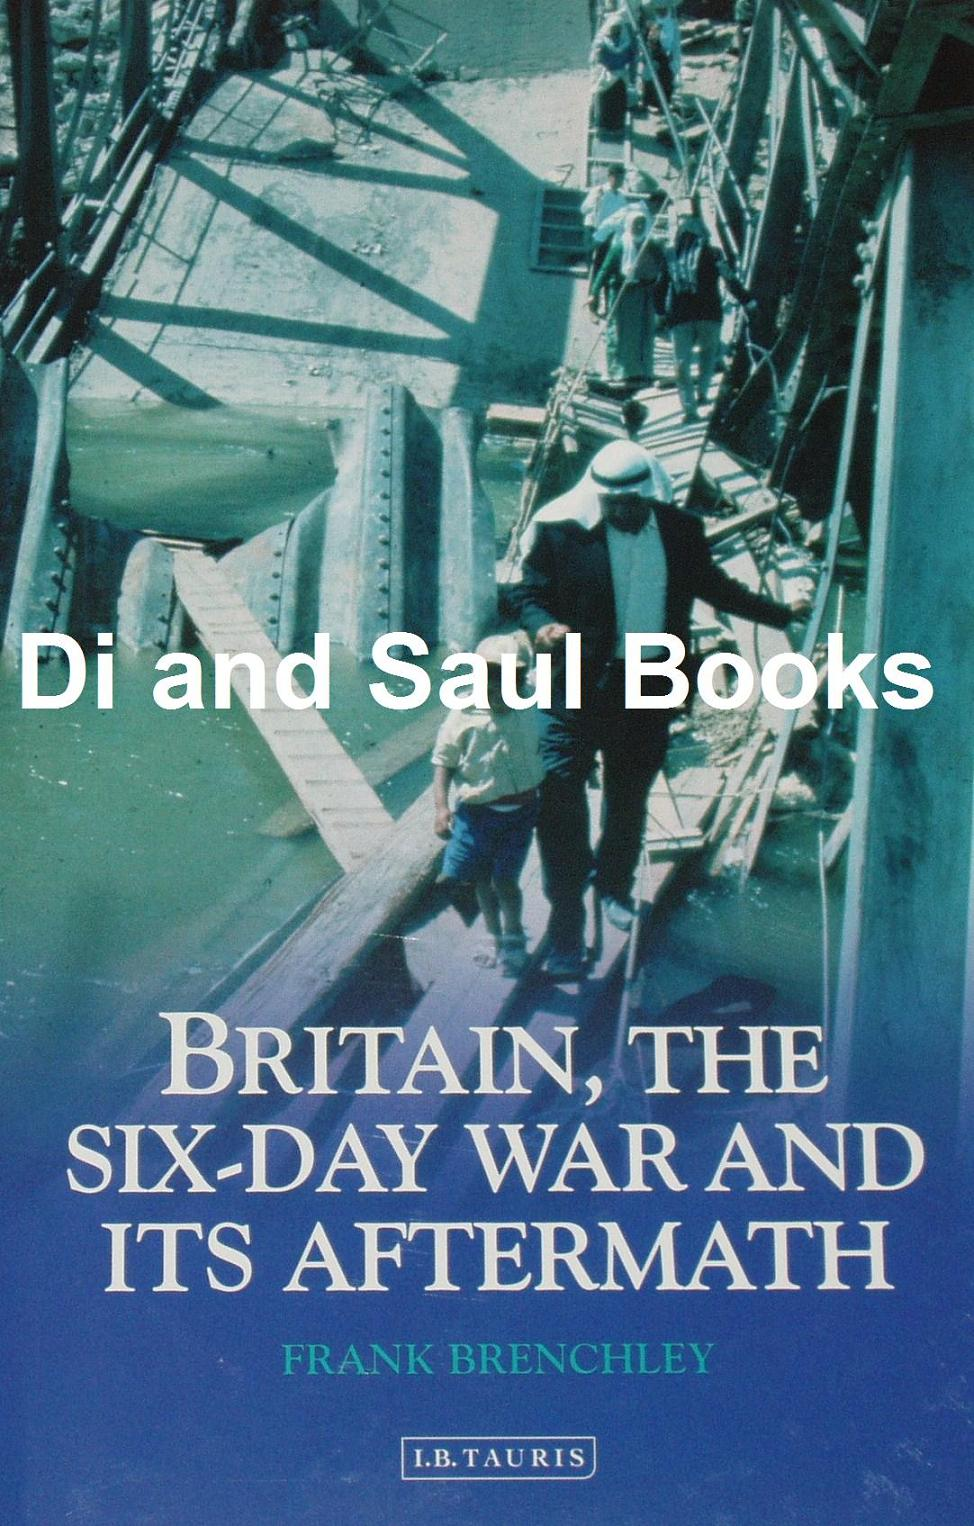 britain the six day war and its aftermath brenchley frank